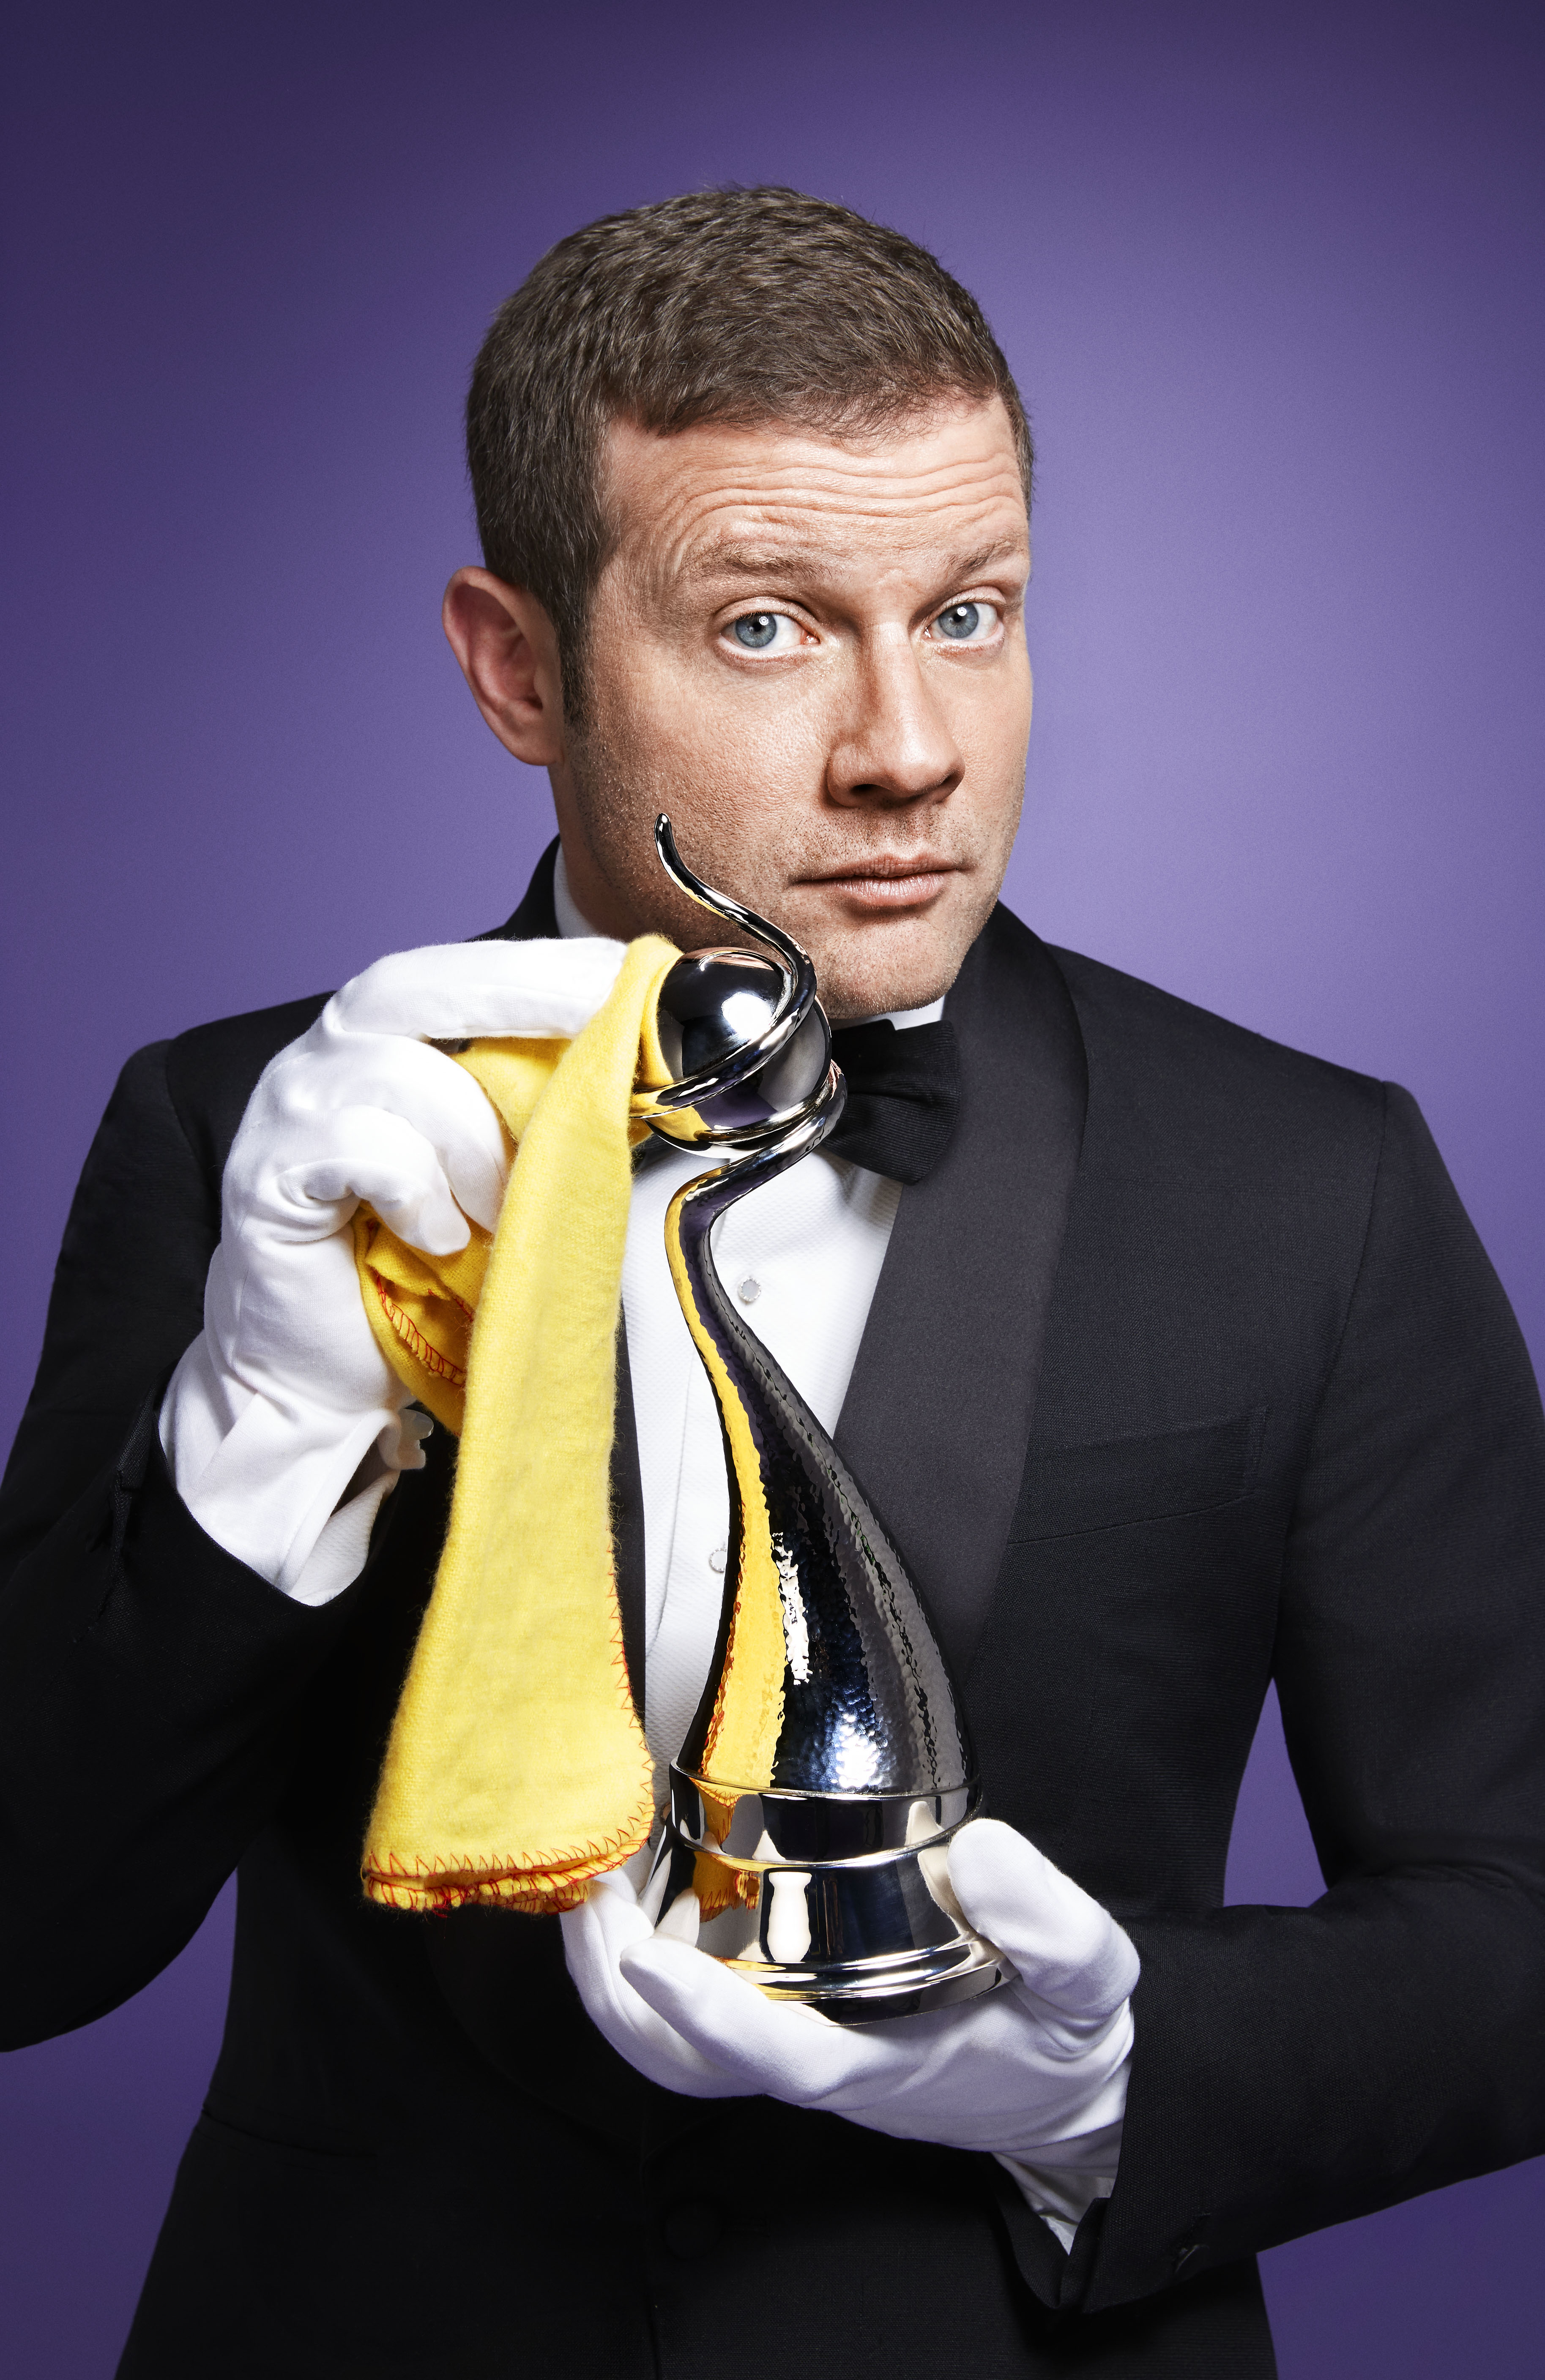 who is hosting the nta national television awards dermot o leary i ve never actually watched. Black Bedroom Furniture Sets. Home Design Ideas